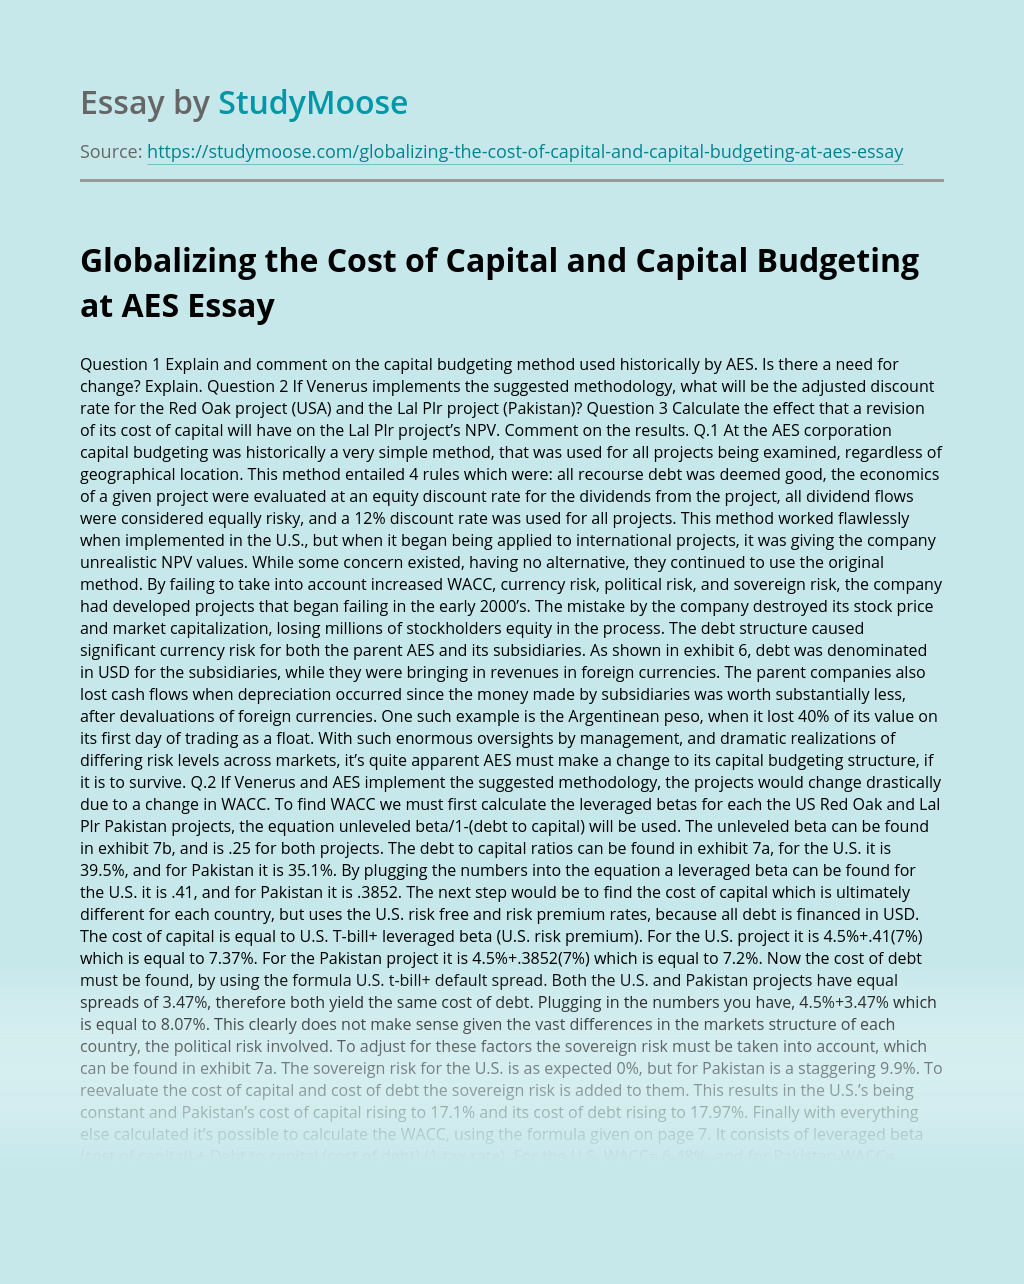 Globalizing the Cost of Capital and Capital Budgeting at AES